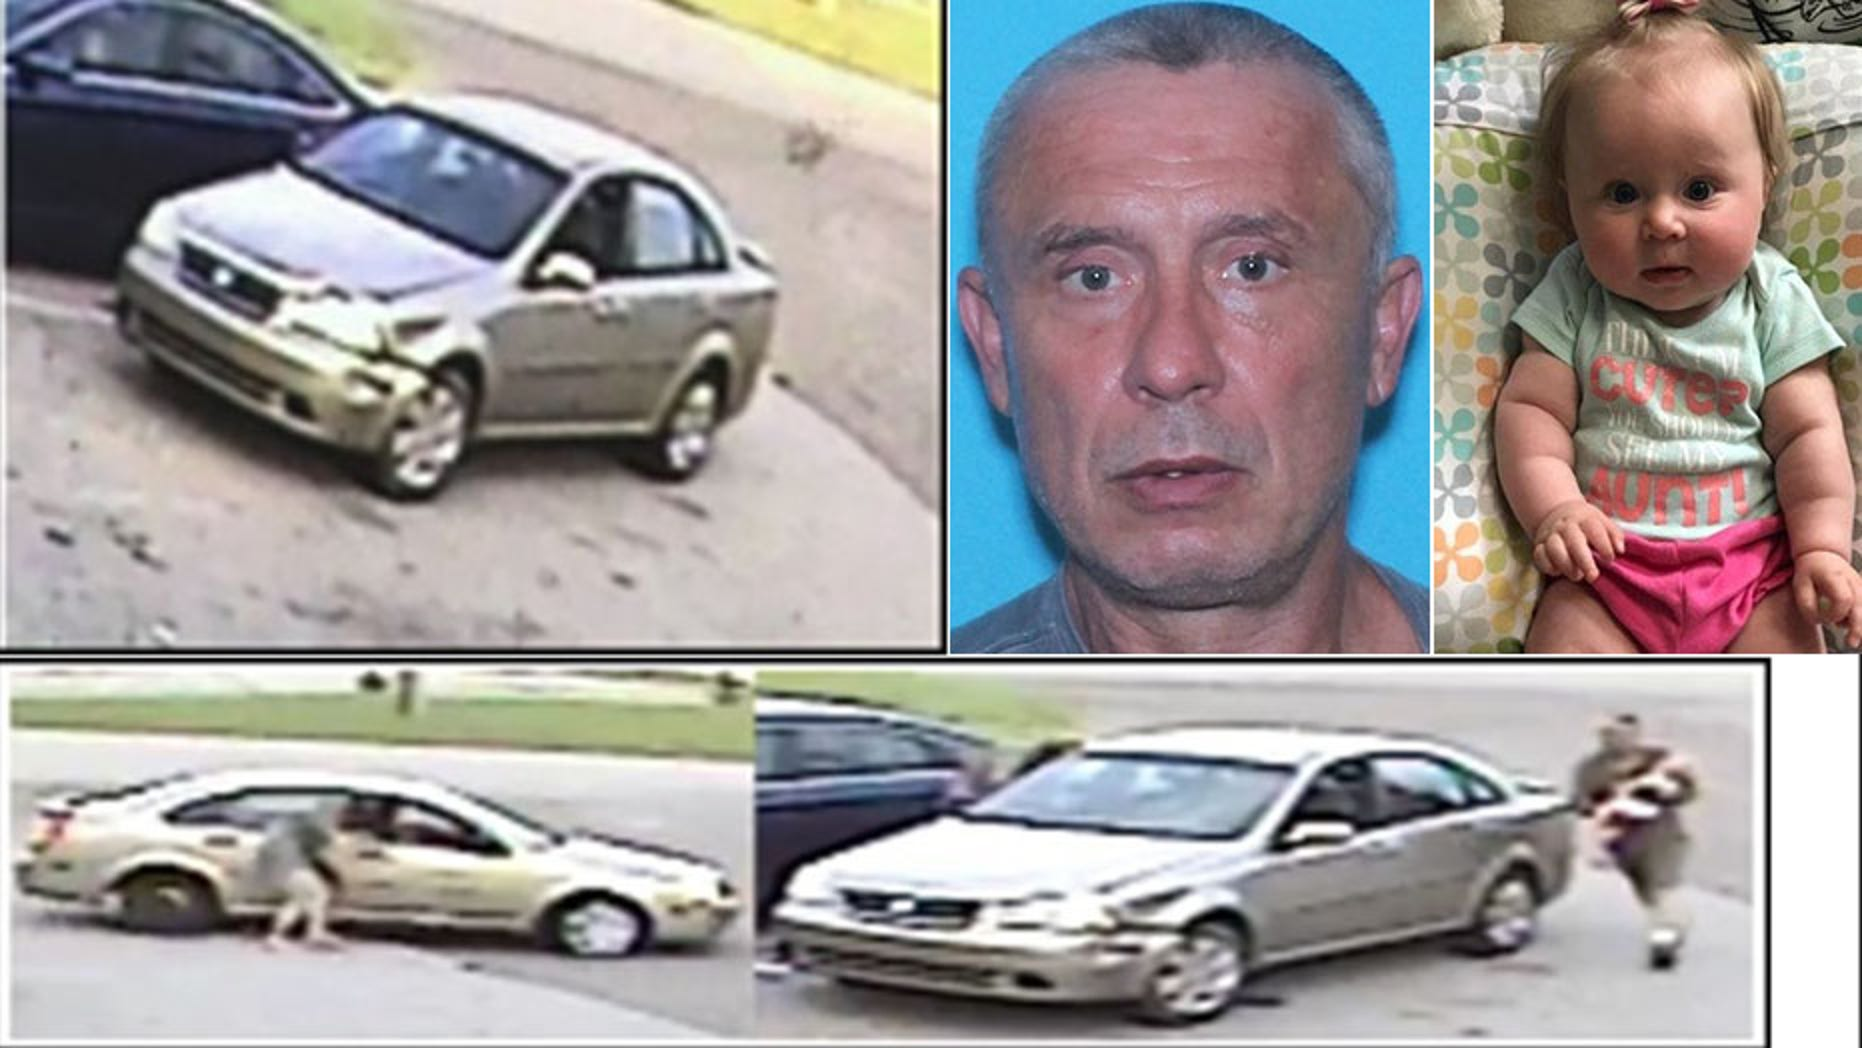 Carl Ray Kennedy is believed to be traveling in the vehicle pictured after abducting Emma Grace Kennedy on Sunday, police say.